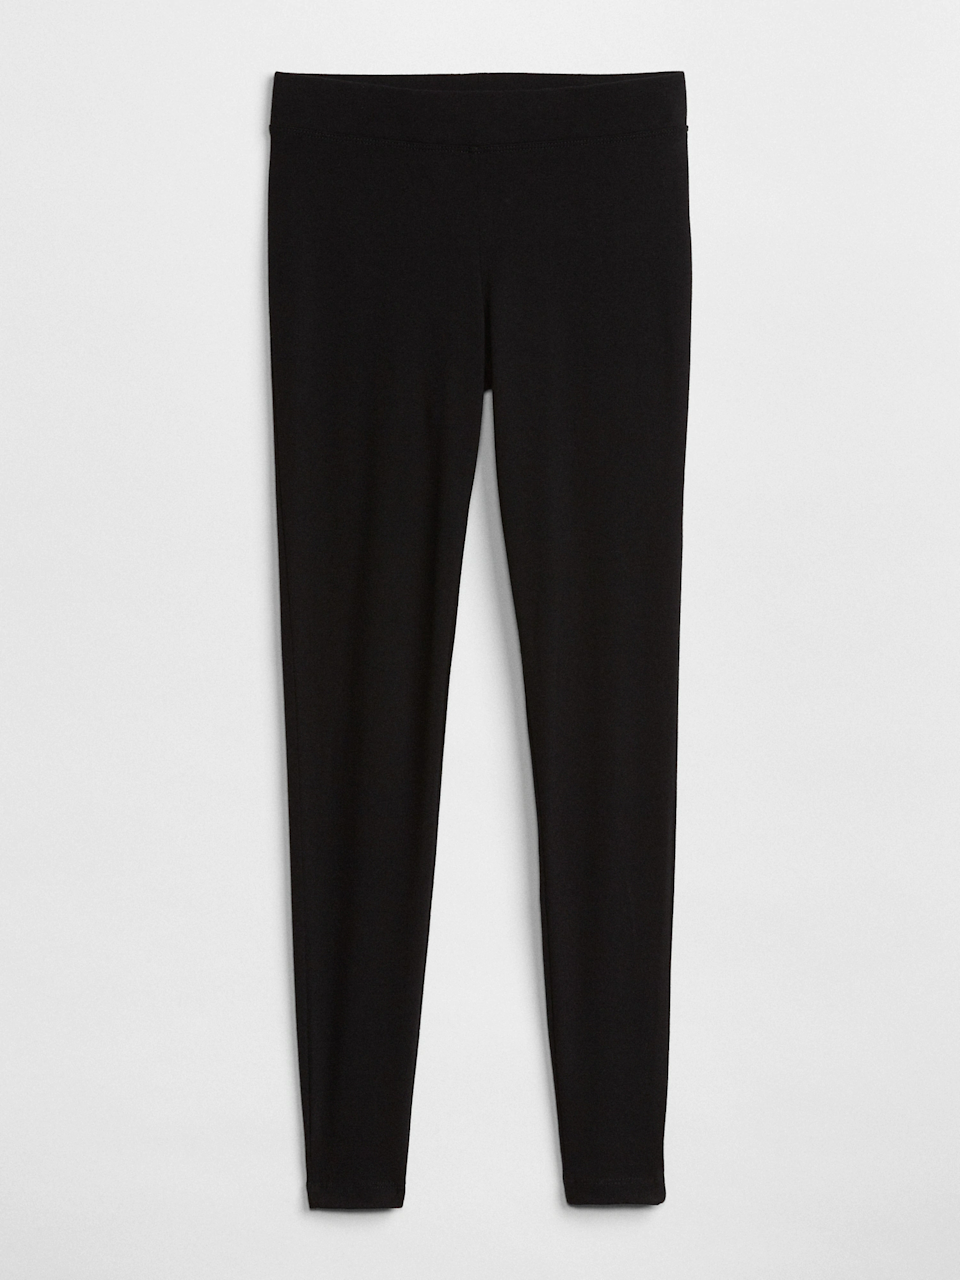 """<strong><h3>Gap: The Lounge Legging</h3></strong> <br>Looking for a pair of leggings that are as basic as they come? Look no further. This tried and true Gap pair will have you buying more than one so you can keep them in constant rotation.<br><br><strong>The hype:</strong> 4.5 out of 5 stars and 567 reviews on Gap<br><br><strong>What they're saying:</strong> """"I own 5 pairs of these. Two are in constant rotation and three are back ups because I'm afraid Gap will stop making them. They are quite long which is no problem because I always wear them inside boots. I find they fit large overall side I sized down. I take care not to wash them with anything cotton or light colored, and I *try* to hang them to dry after putting them through the machine. They are holding up very well. I highly recommend them as a basic sytle [sic] but really good legging."""" - MsdotQ, Gap Review<br><br><strong>Gap</strong> Basic Leggings, $, available at <a href=""""https://www.gap.com/browse/product.do?cid=1088813&pcid=1011761&vid=1&pid=905272012"""" rel=""""nofollow noopener"""" target=""""_blank"""" data-ylk=""""slk:Gap"""" class=""""link rapid-noclick-resp"""">Gap</a><br><br><br><br><br>"""